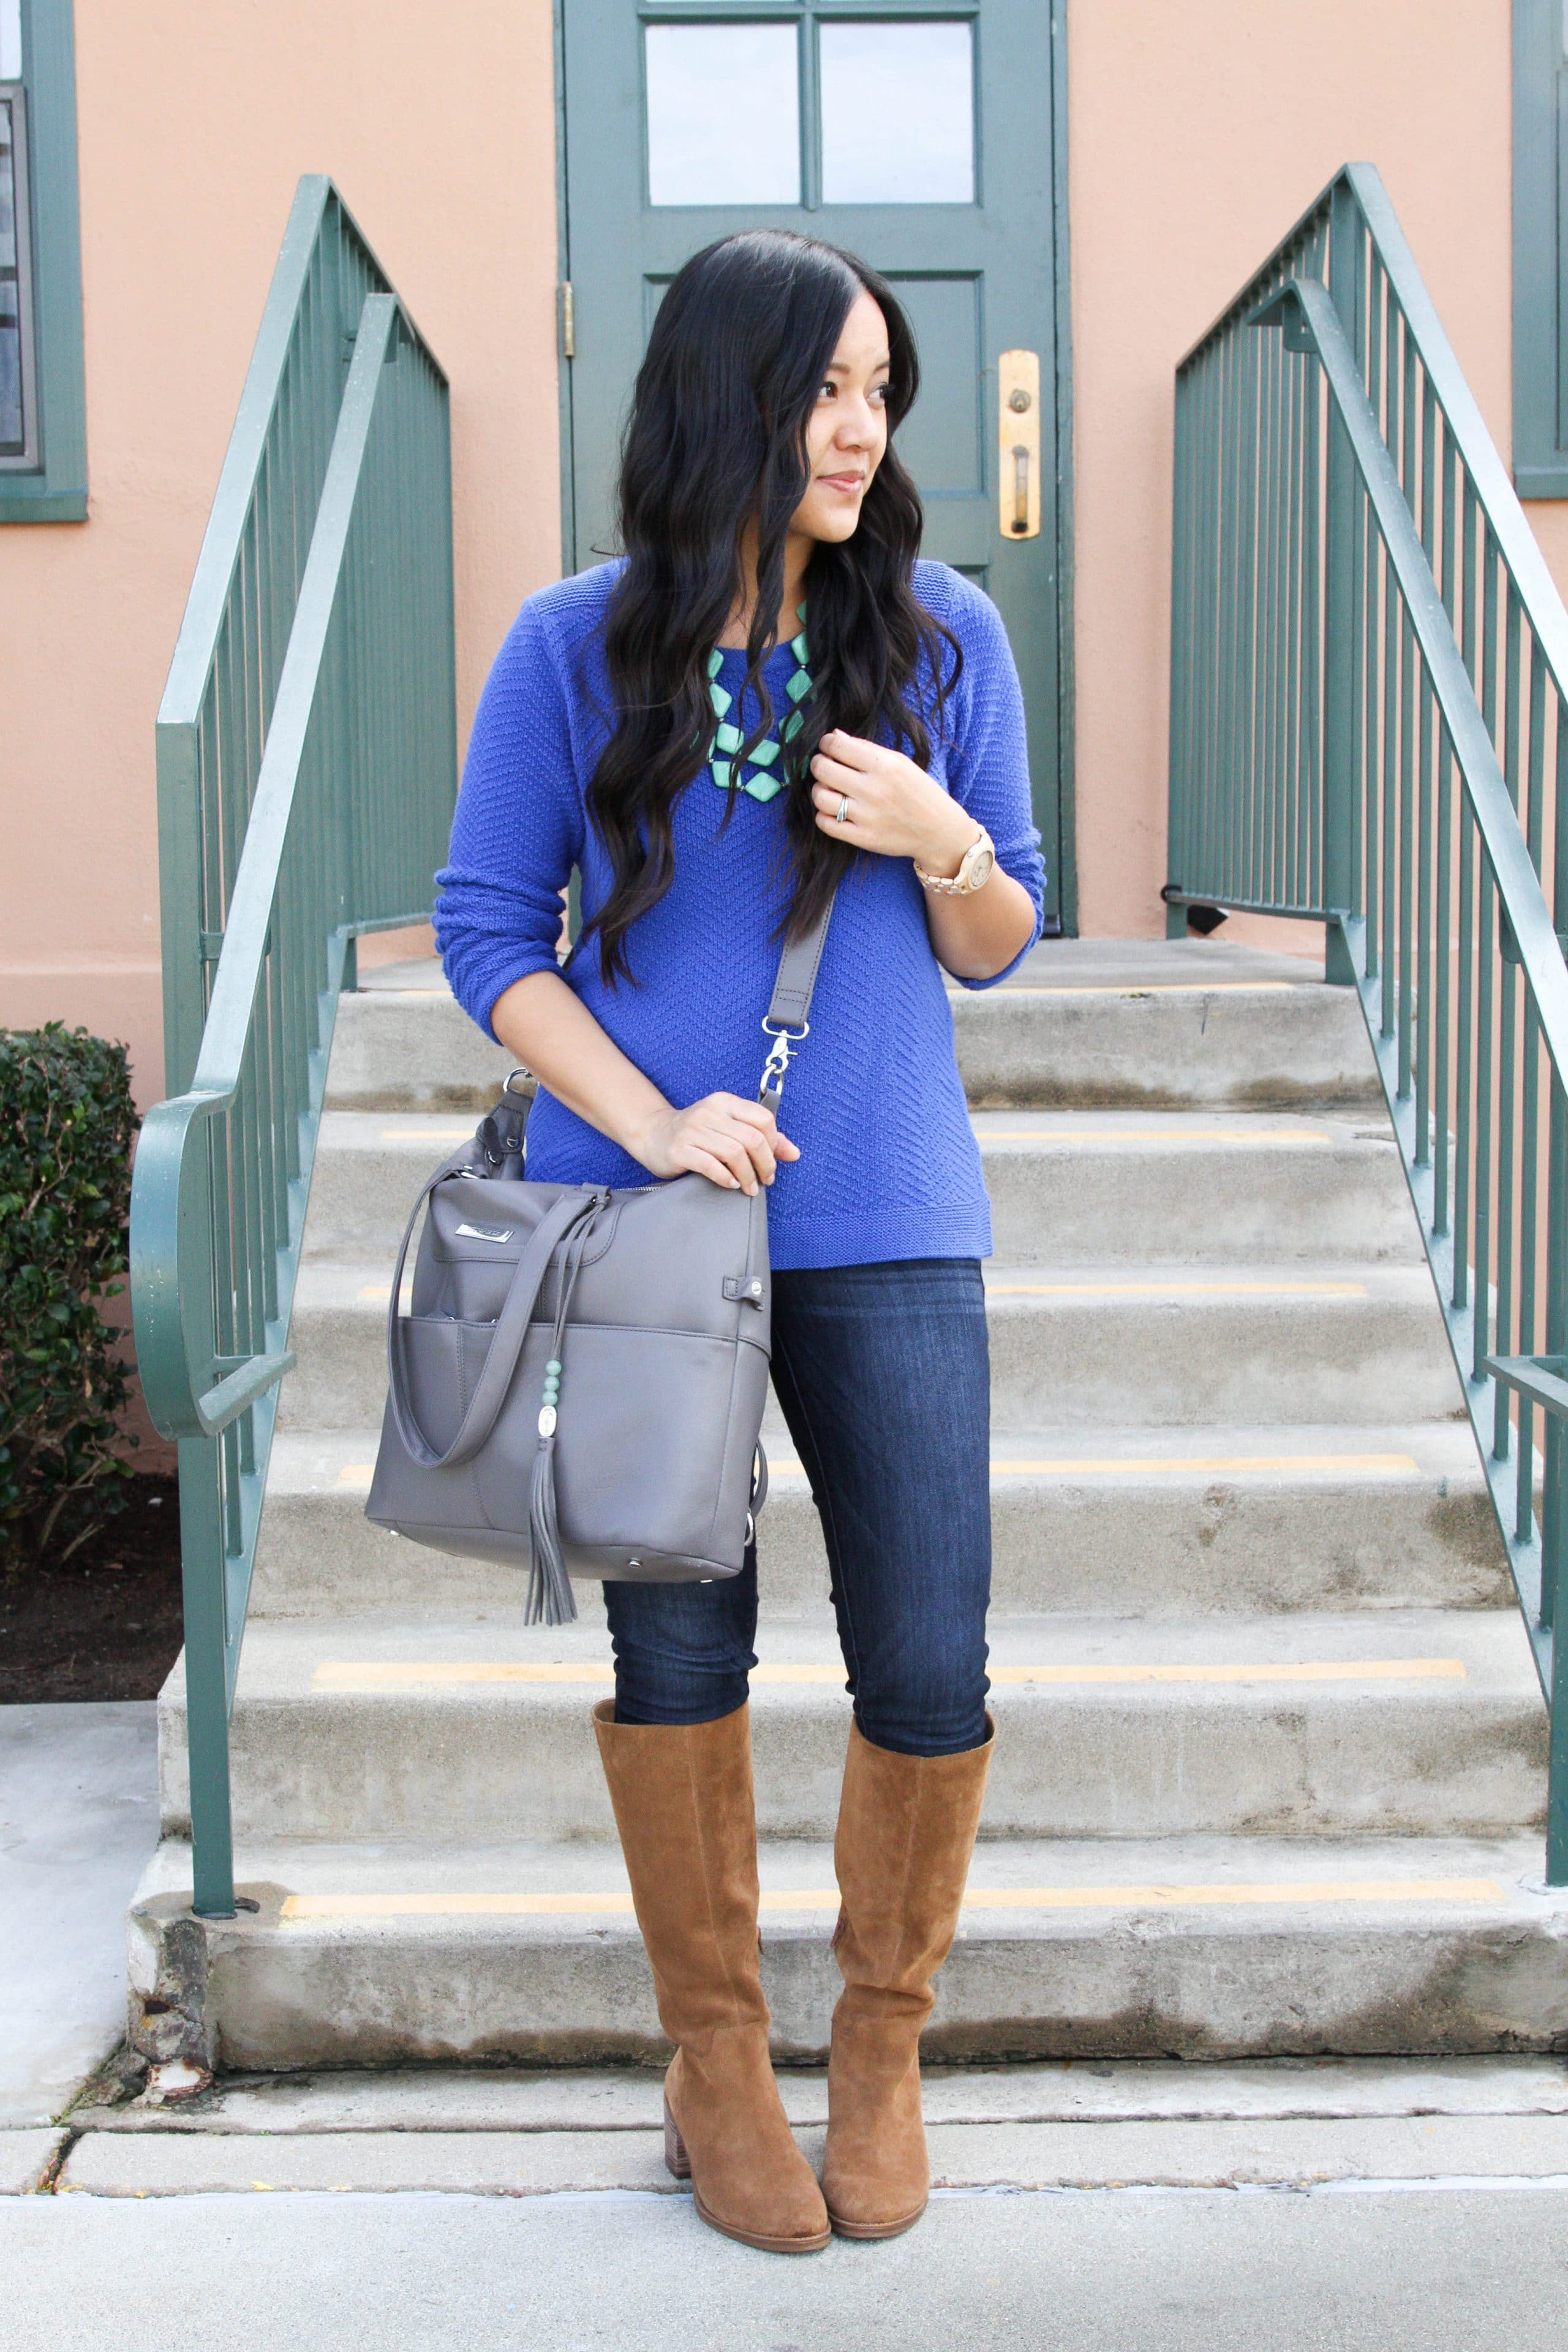 Blue Sweater + Skinnies + Riding Boots + Statement Necklace